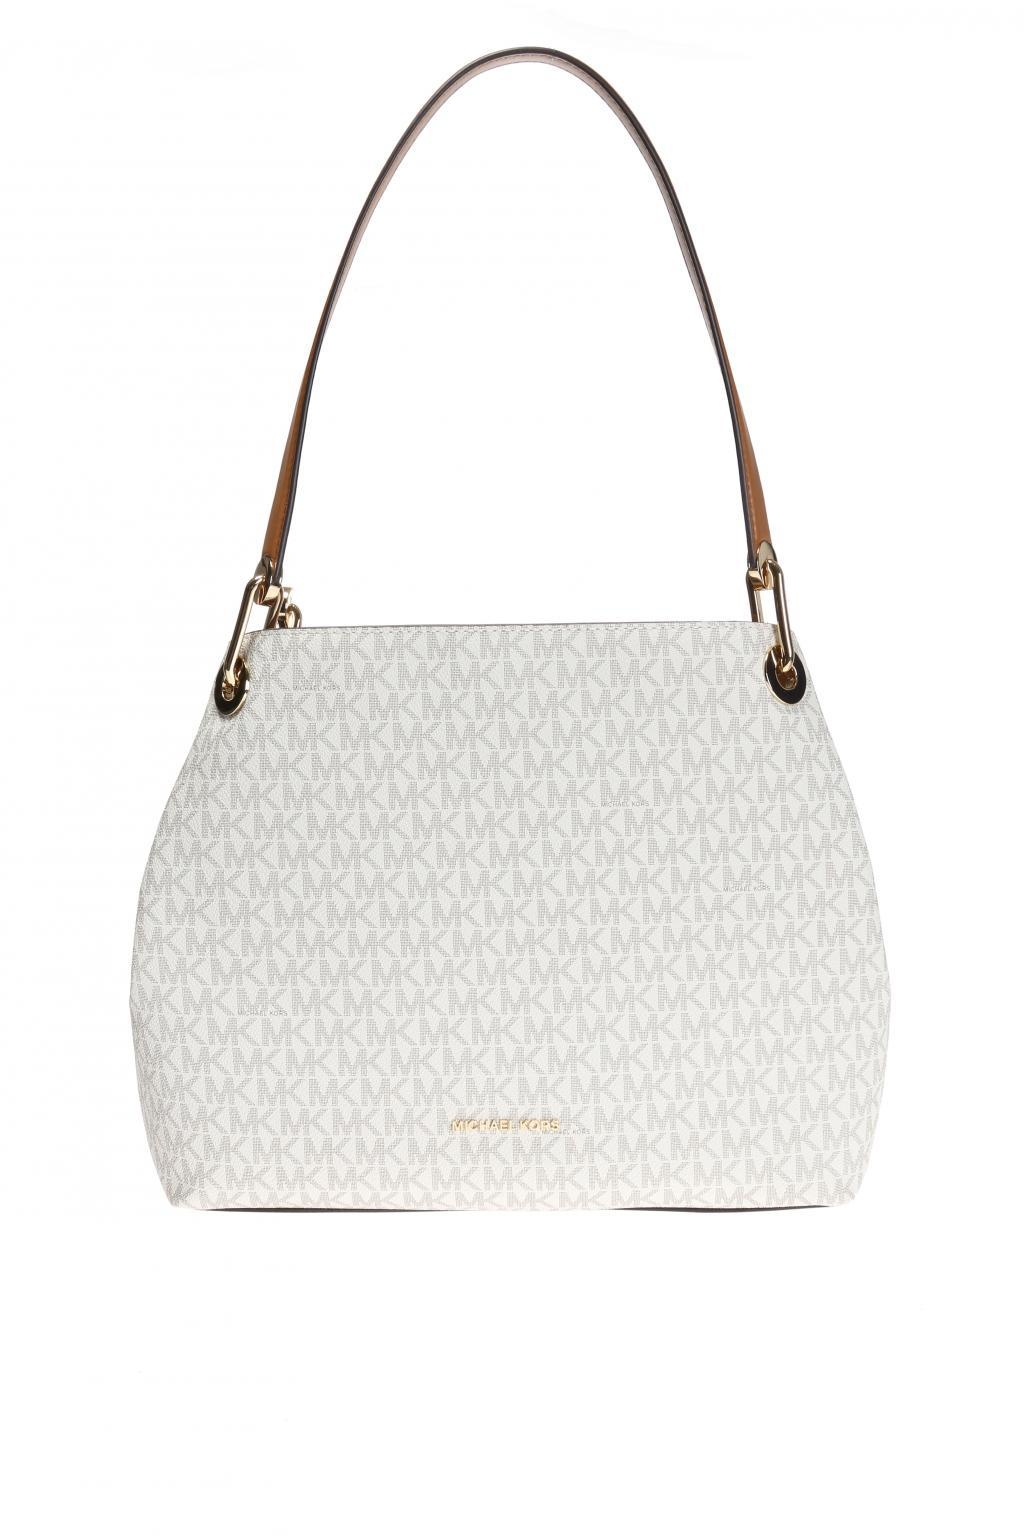 a89a78289c43 ... release date lyst michael kors raven shoulder bag in white 219ab d1134